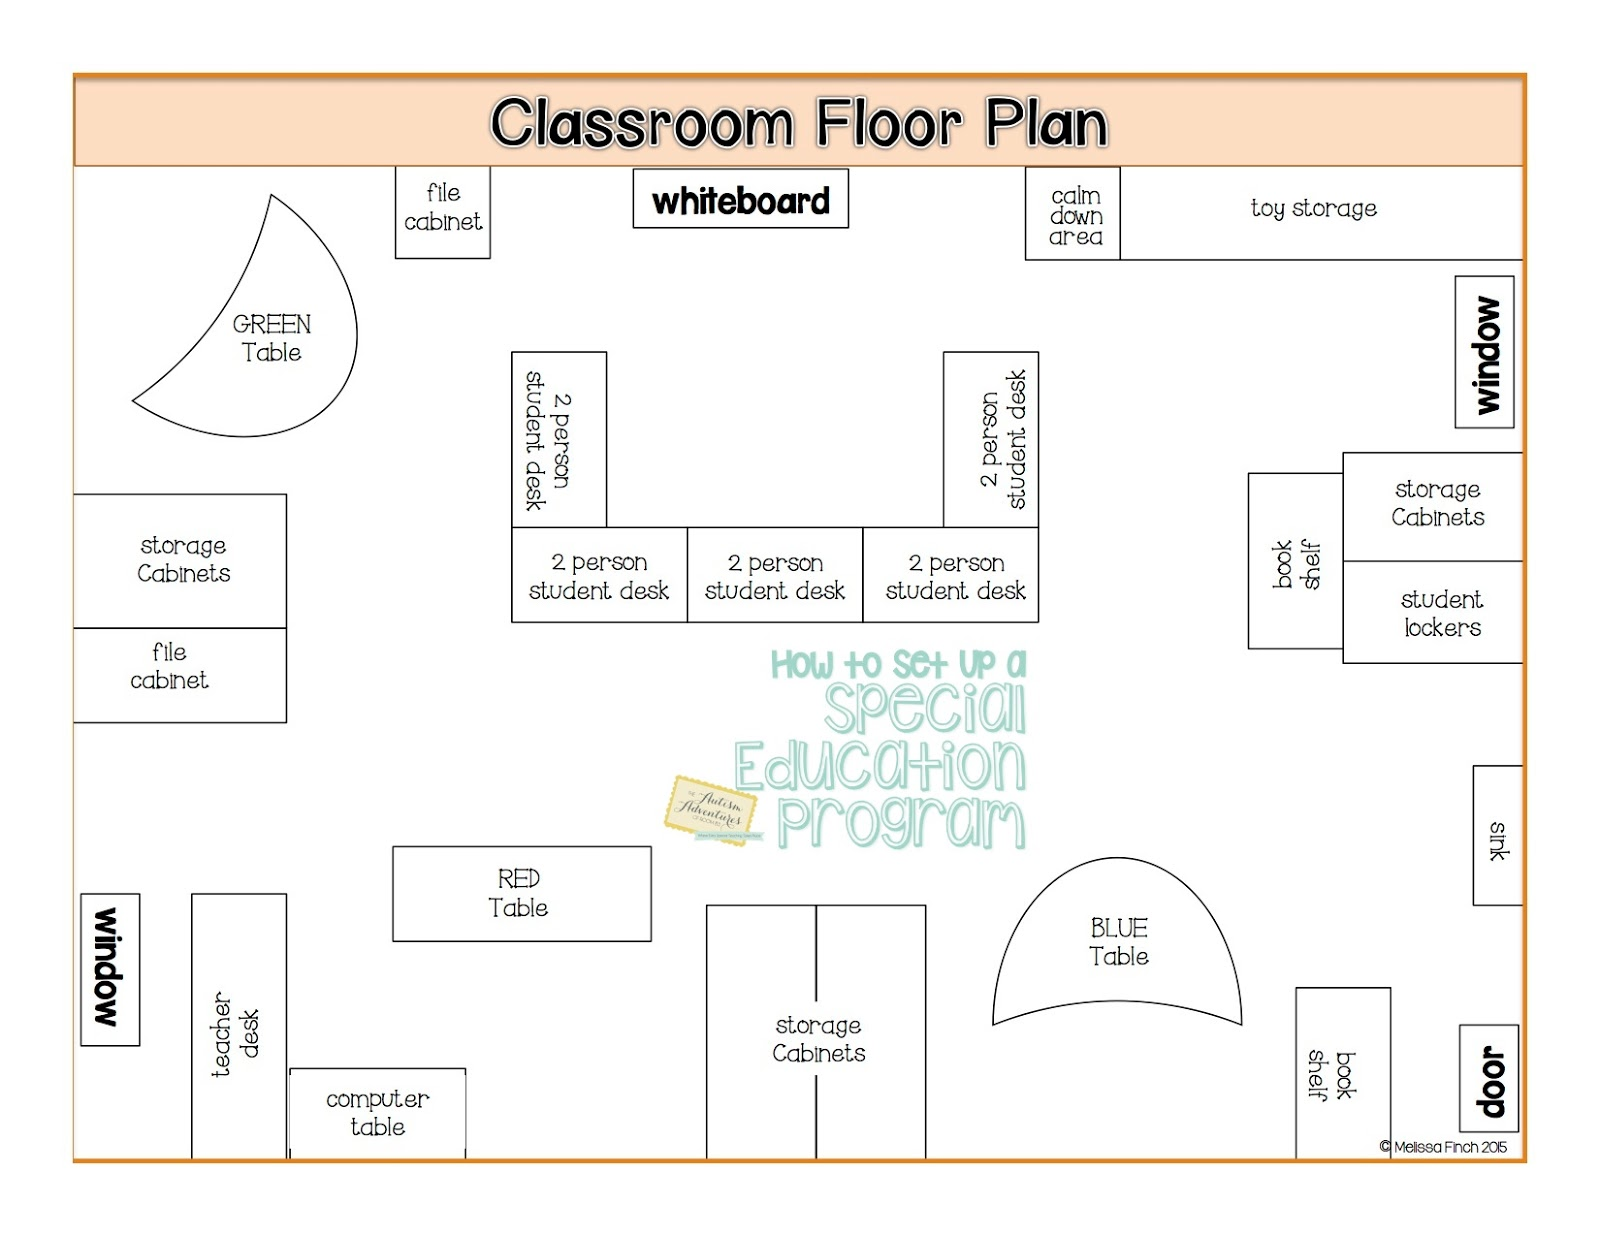 How To Set Up A Special Education Program Floor Plans Autism Adventures